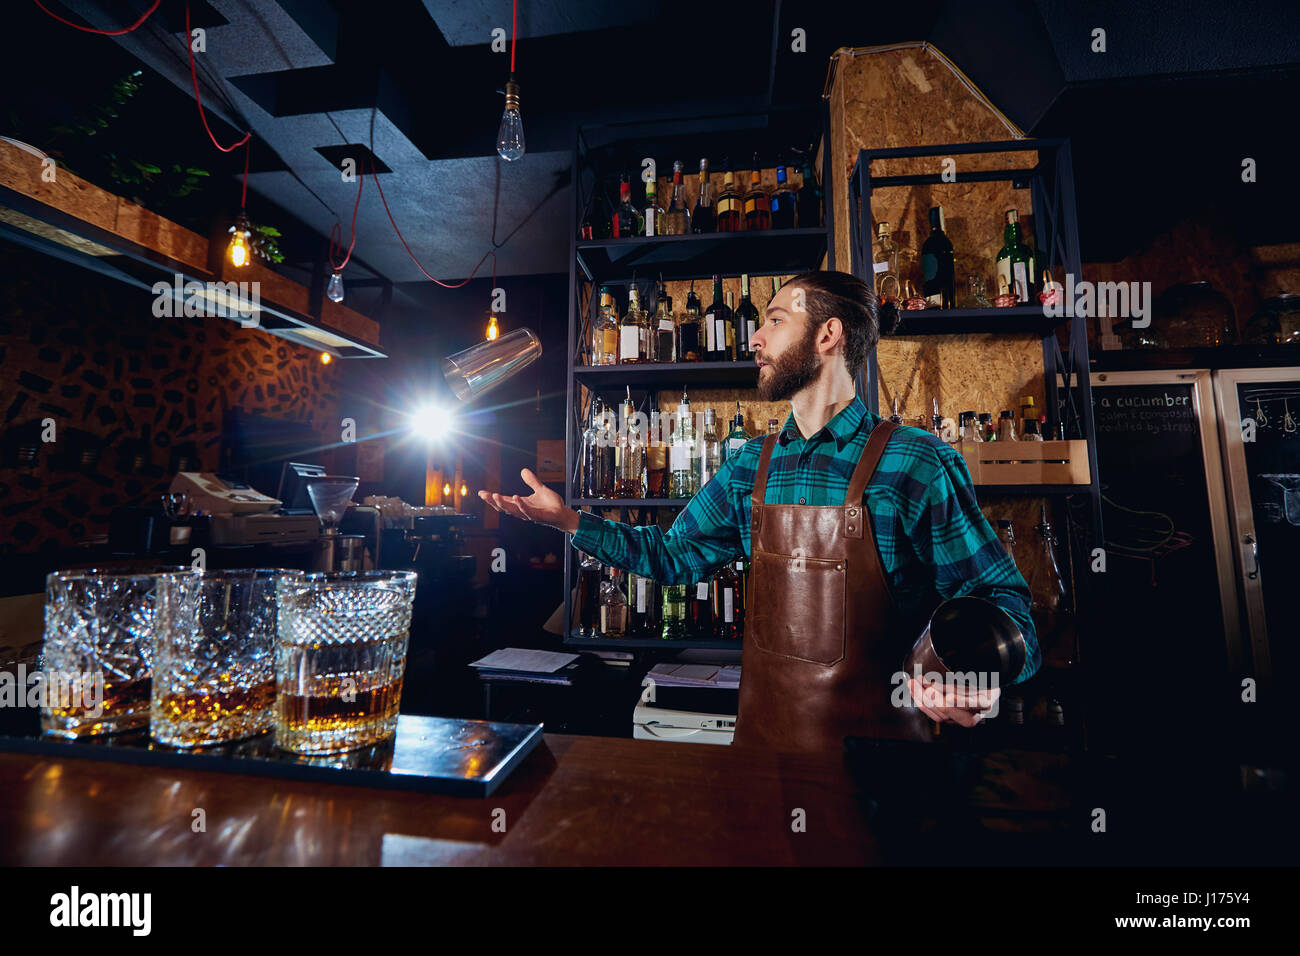 The barman juggler throws up a glass for  cocktail at bar - Stock Image